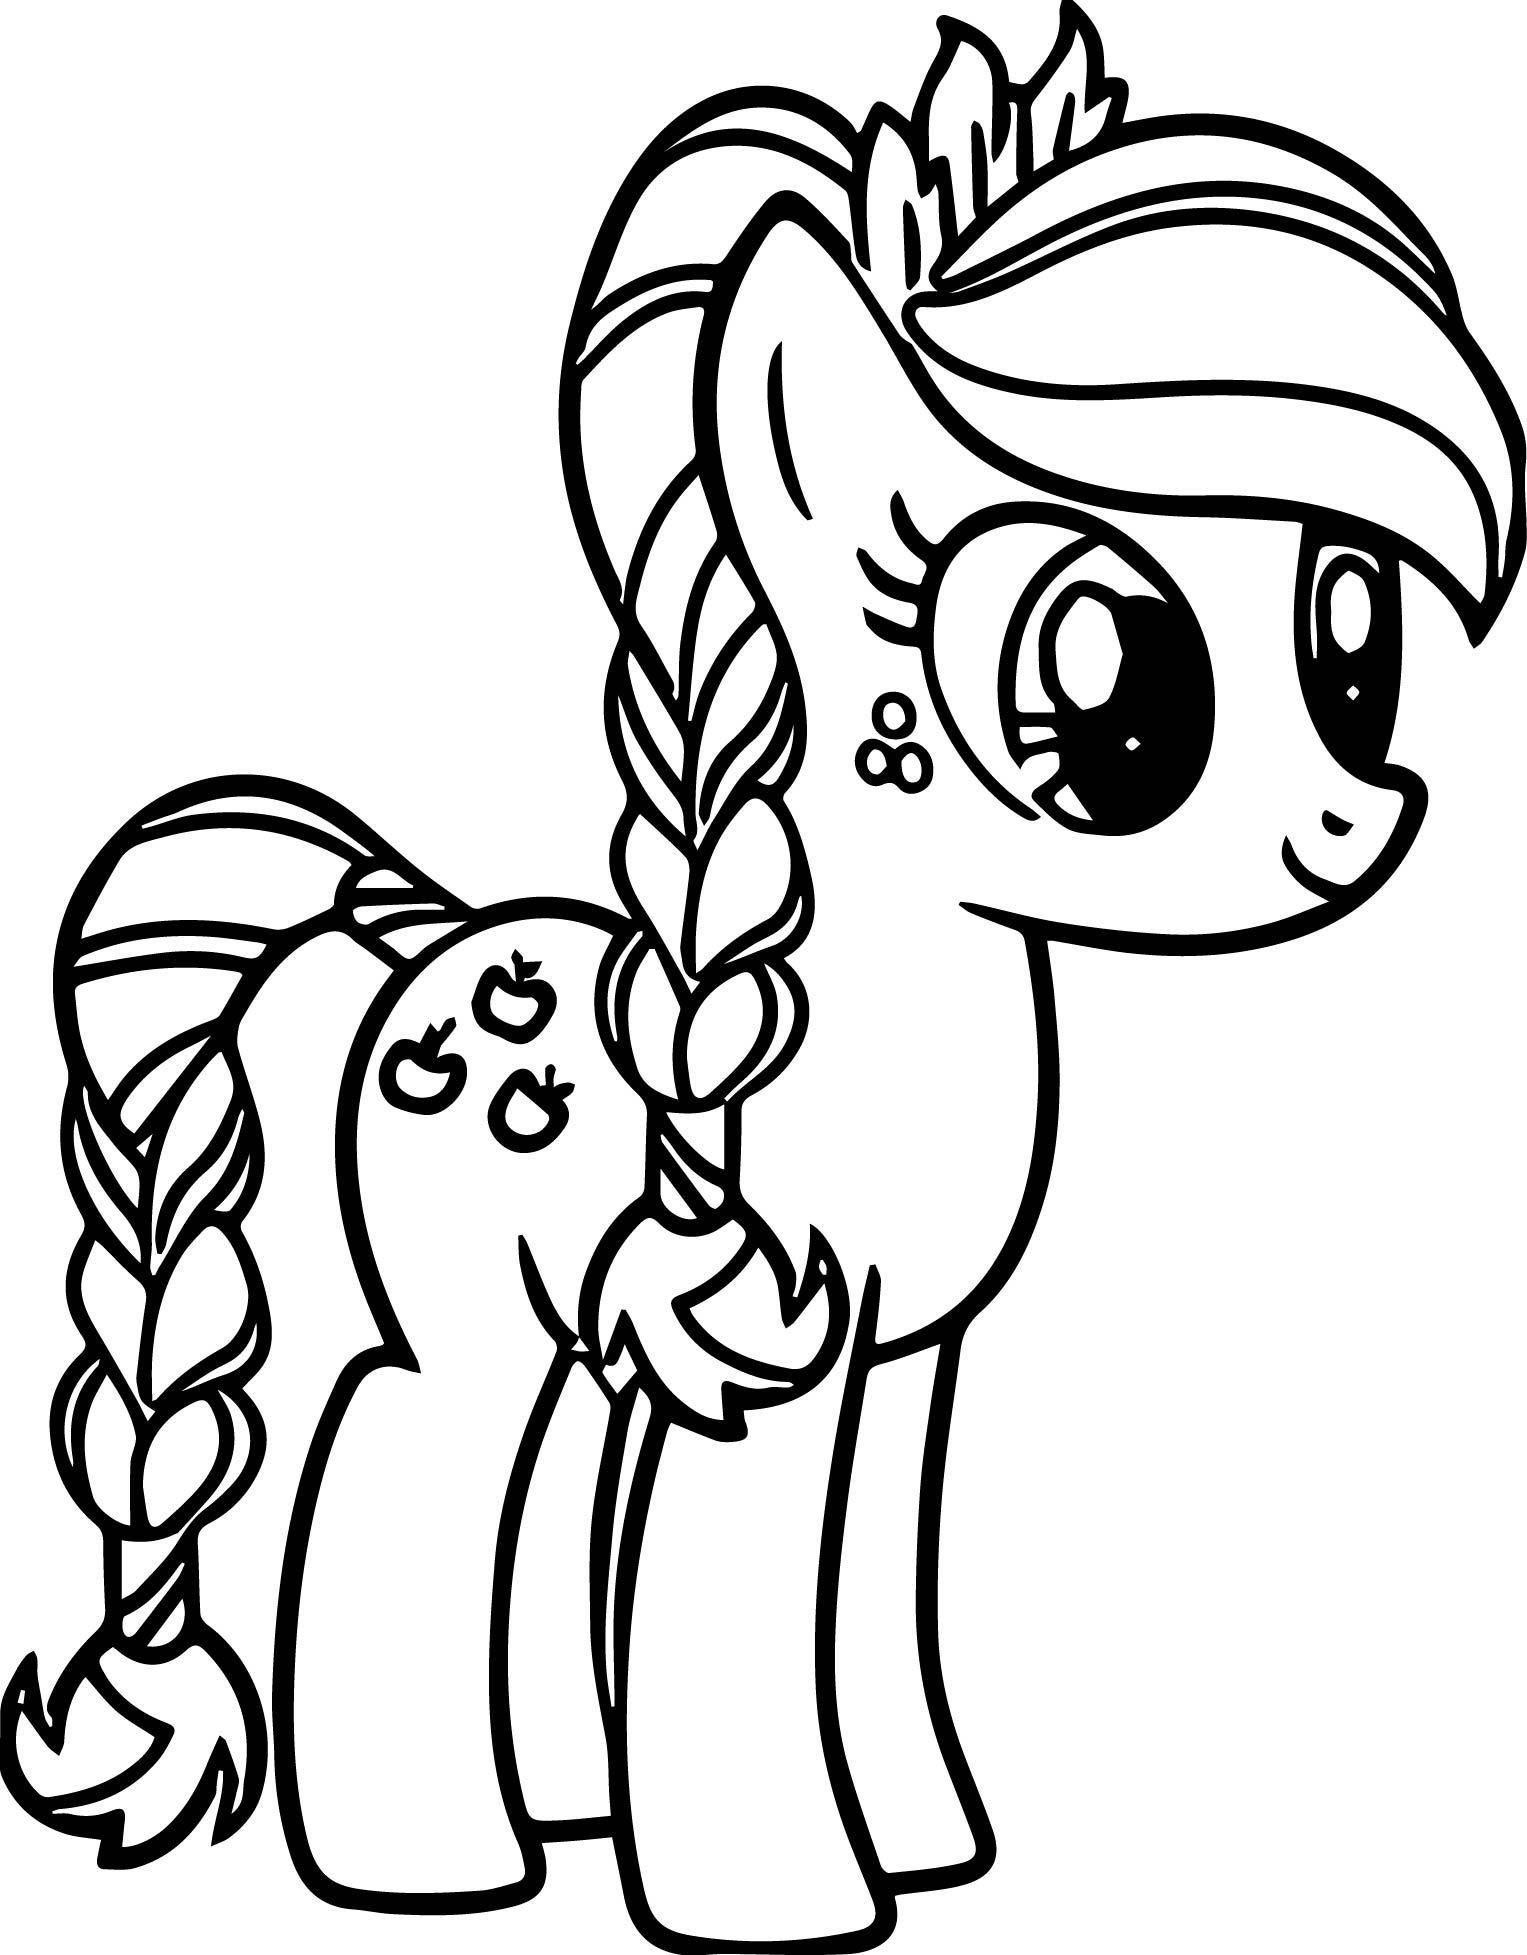 Cool Apple My Little Pony Coloring Page Unicorn Coloring Pages My Little Pony Coloring My Little Pony Printable